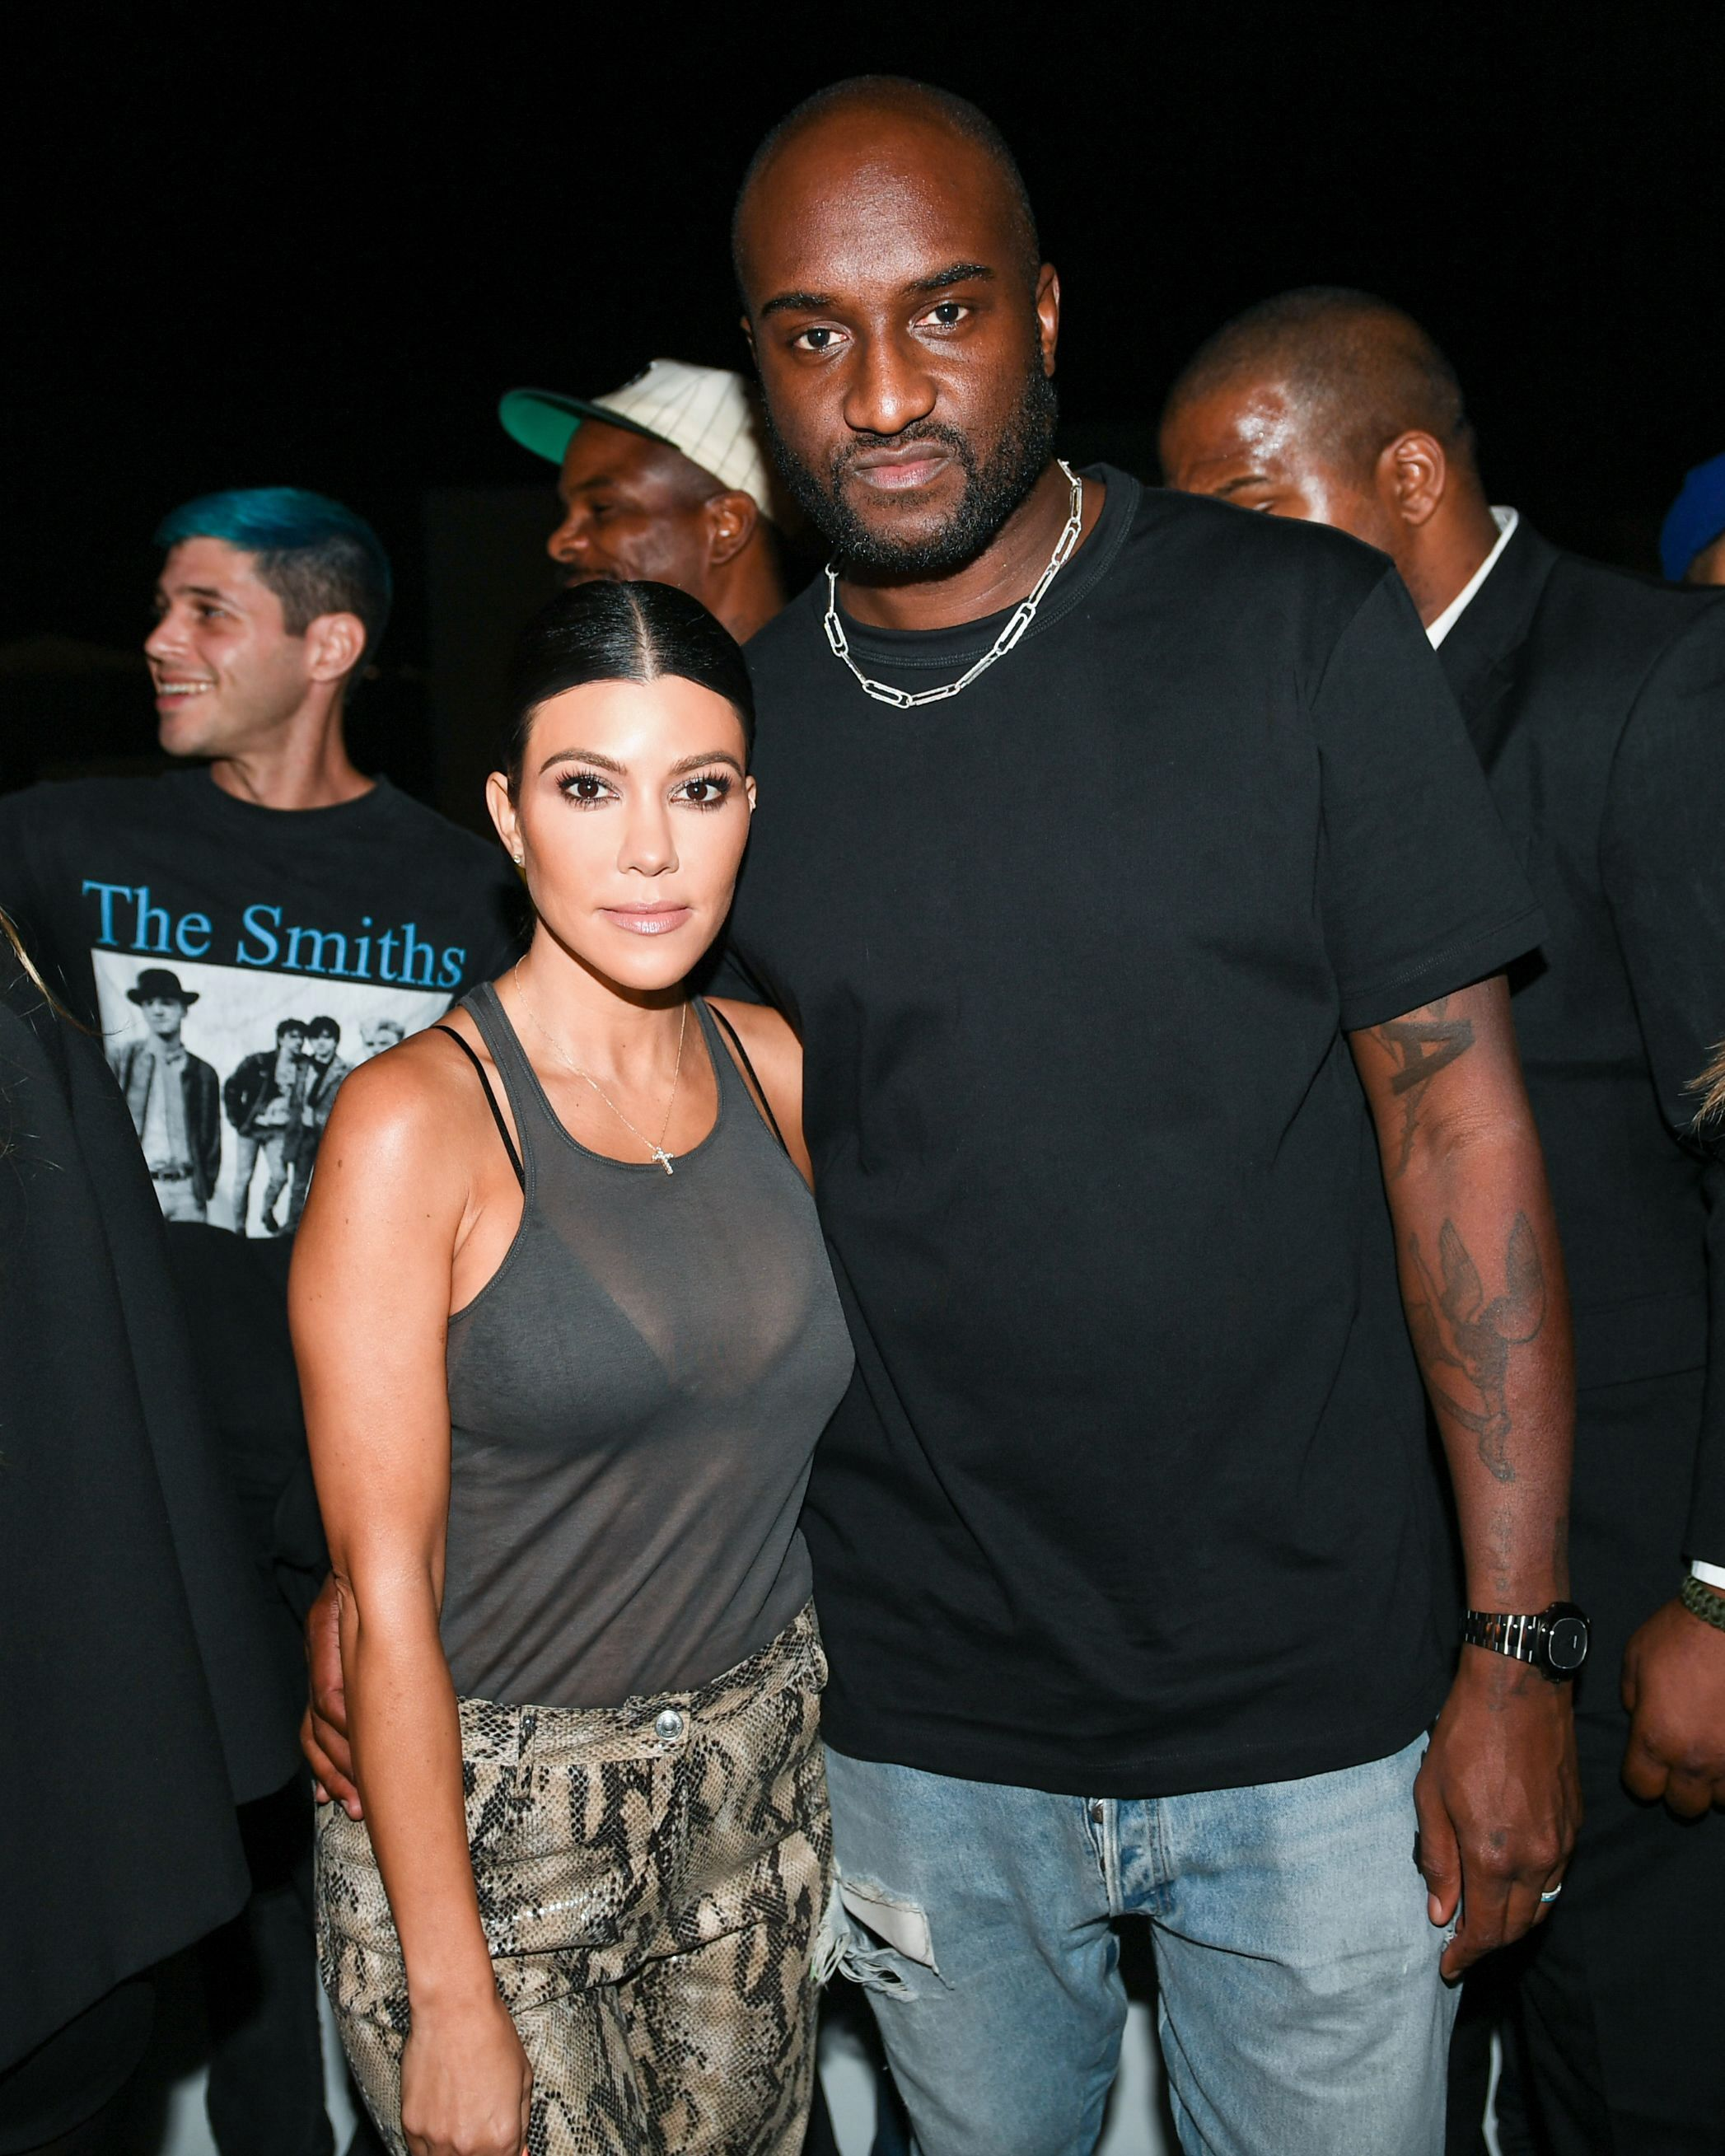 Kourtney Kardashian and Virgil Abloh attend the Murakami & Abloh America Too party at Gagosian Beverly Hills in Los Angeles on Oct. 10, 2018.